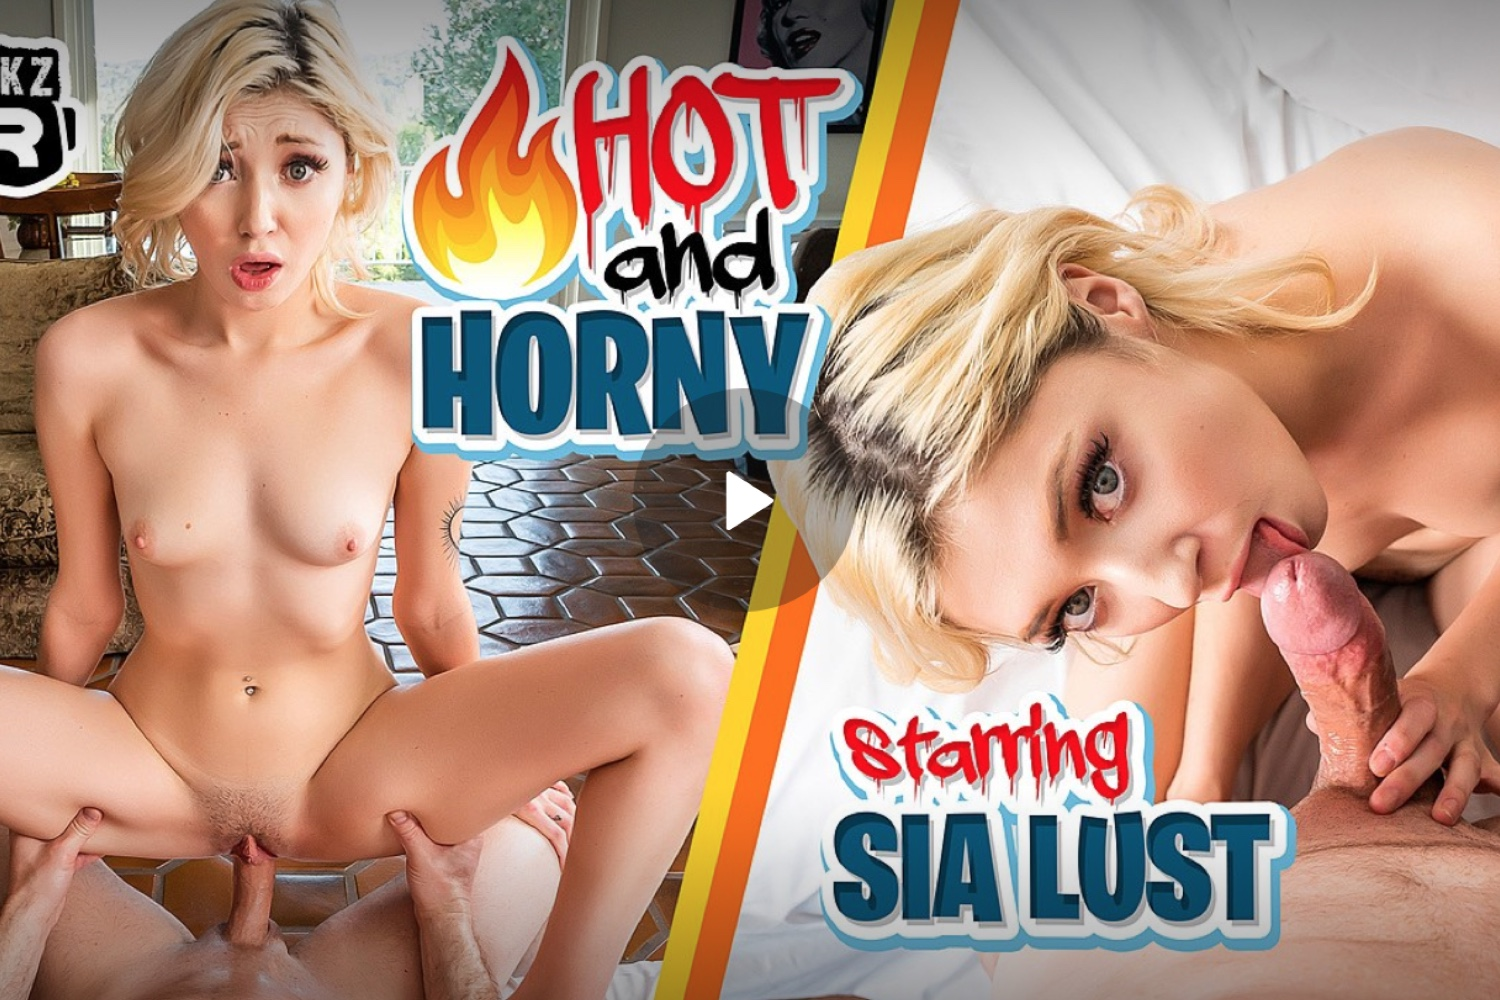 Hot and Horny - Sia Lust VR Porn - Sia Lust Virtual Reality Porn